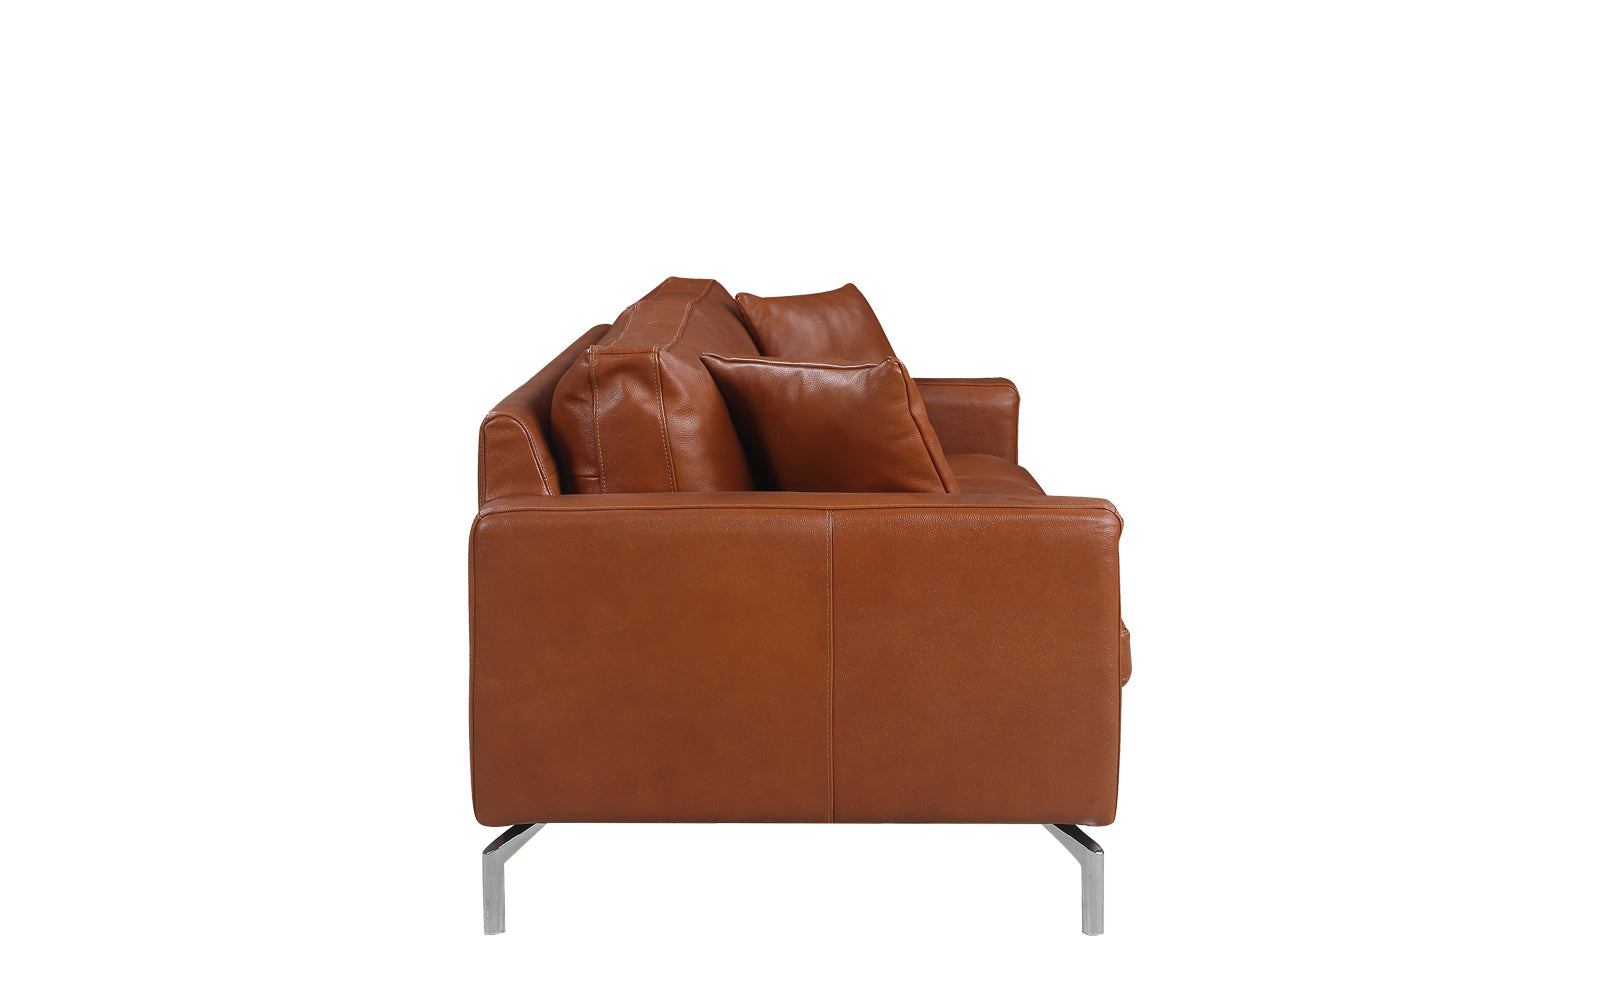 contemporary living room couches. Sebastián Plush Leather Mid Century Modern Living Room Sofa Camel Side Shot Contemporary Couches